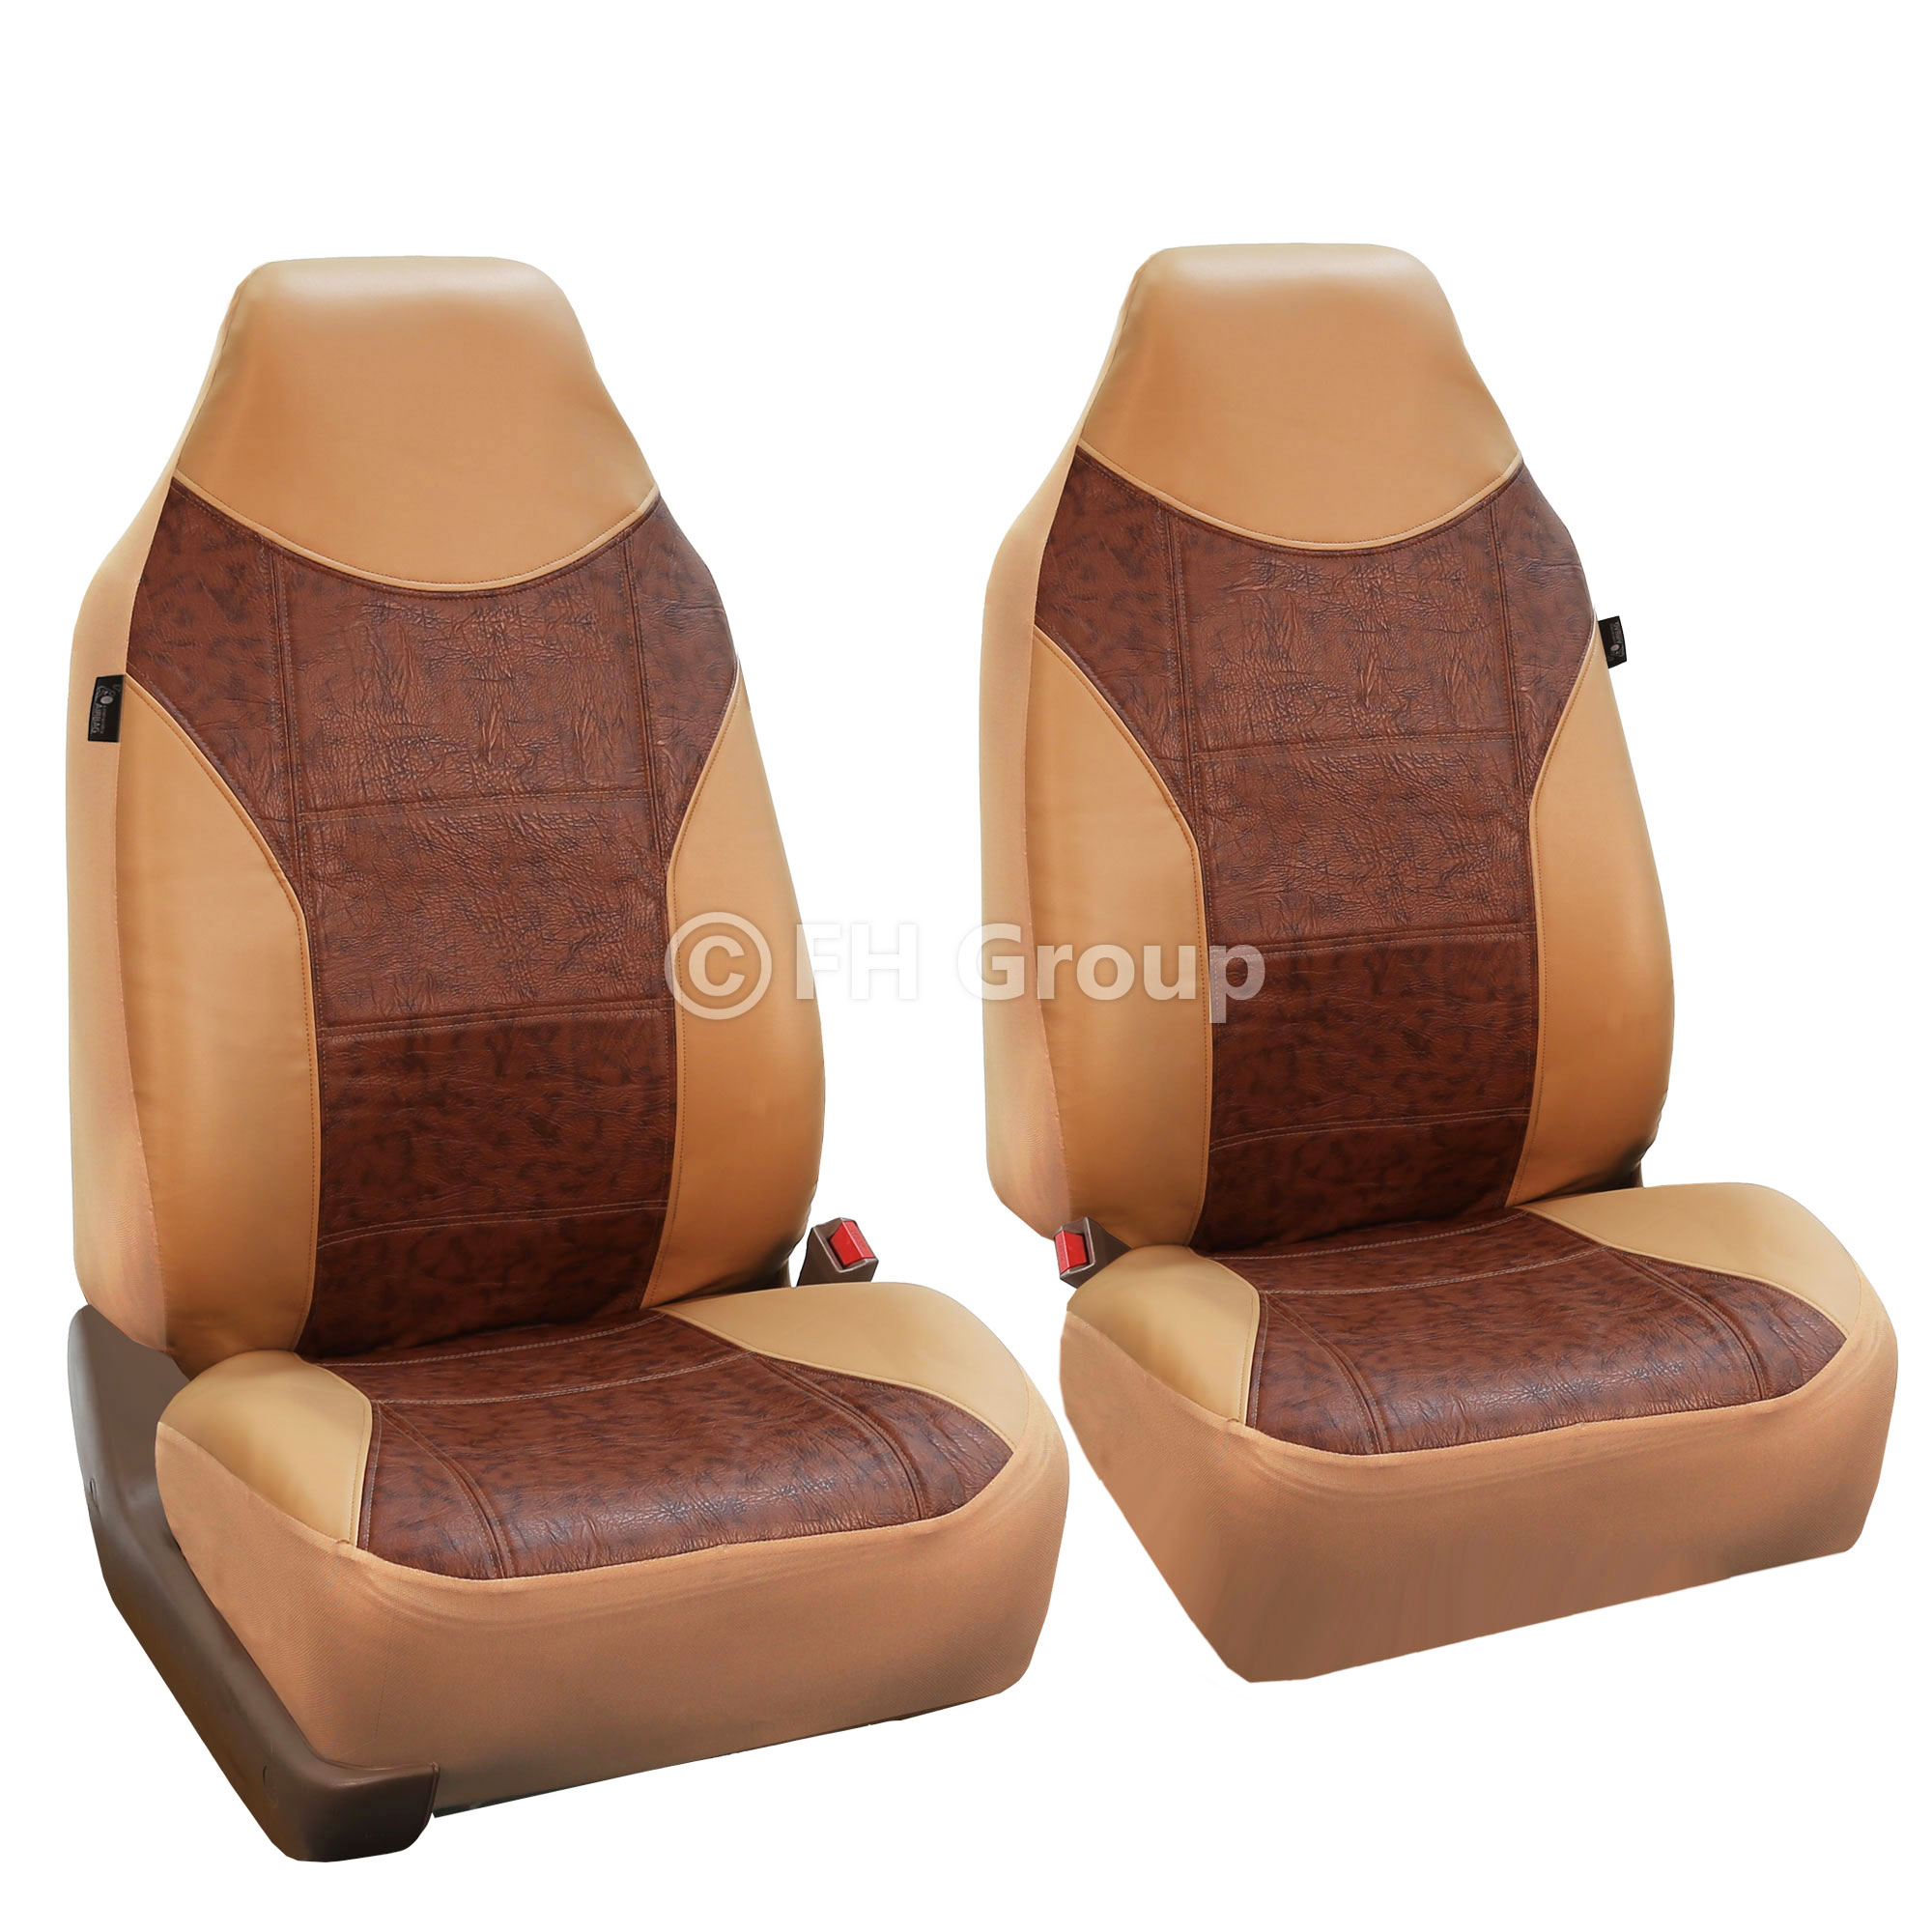 FH Group Highback Textured Leather Seat Covers for Sedan, SUV, Van, Truck, Two Highback Buckets, Tan